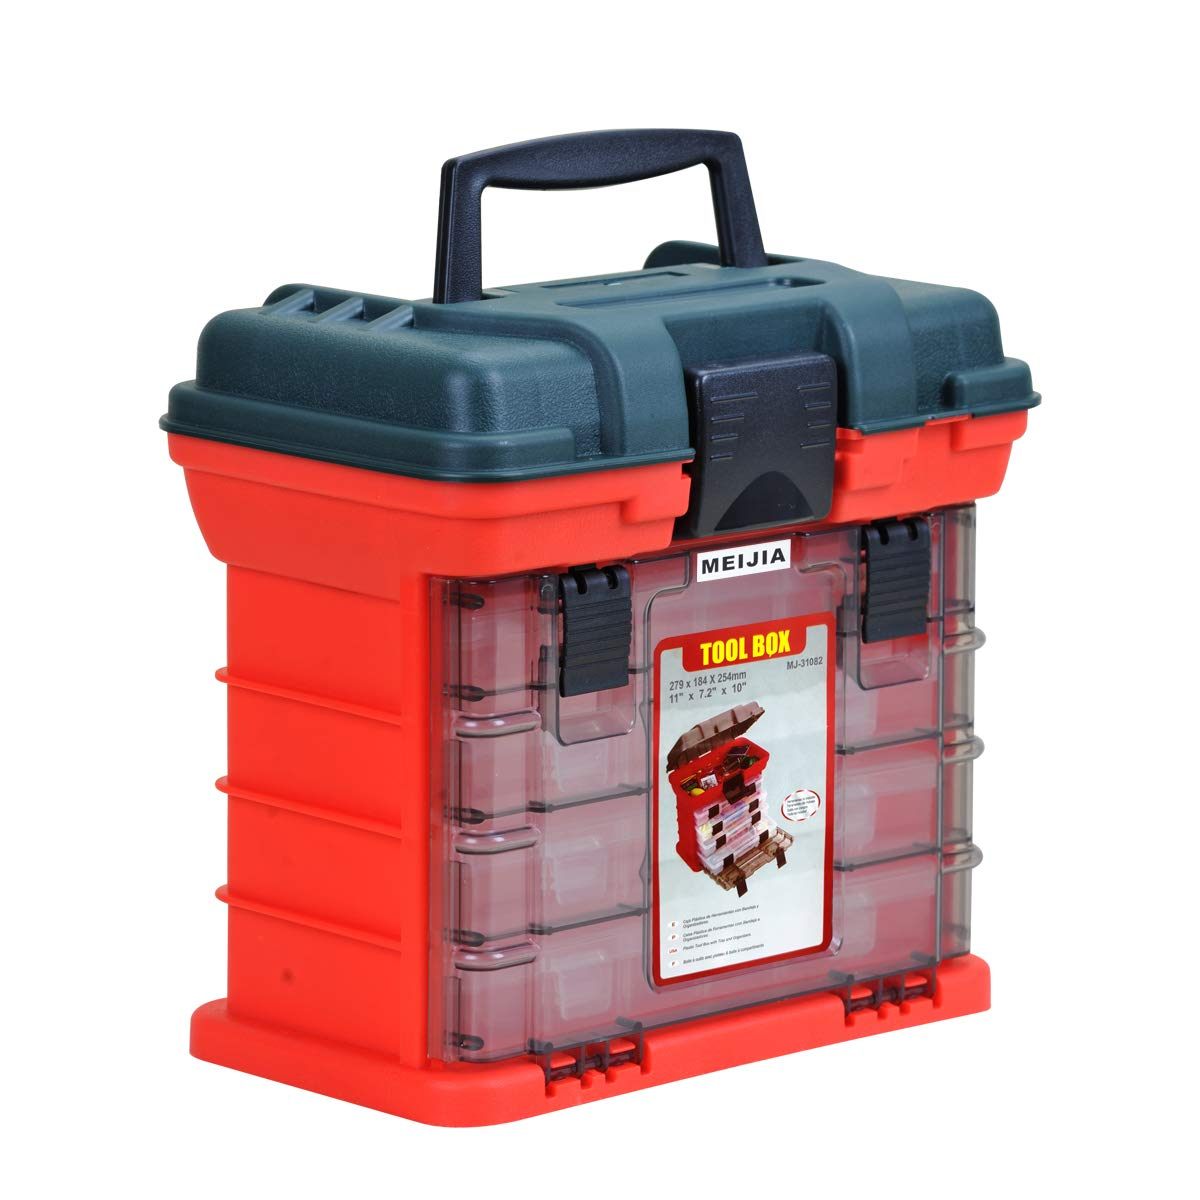 MEIJIA Portable Fishing Tackle Tool Box,Tool Organizers with 4 Removable Box and Adjustable Dividers,10.98x7.24x10.24inches(Red and Green) by MEIJIA